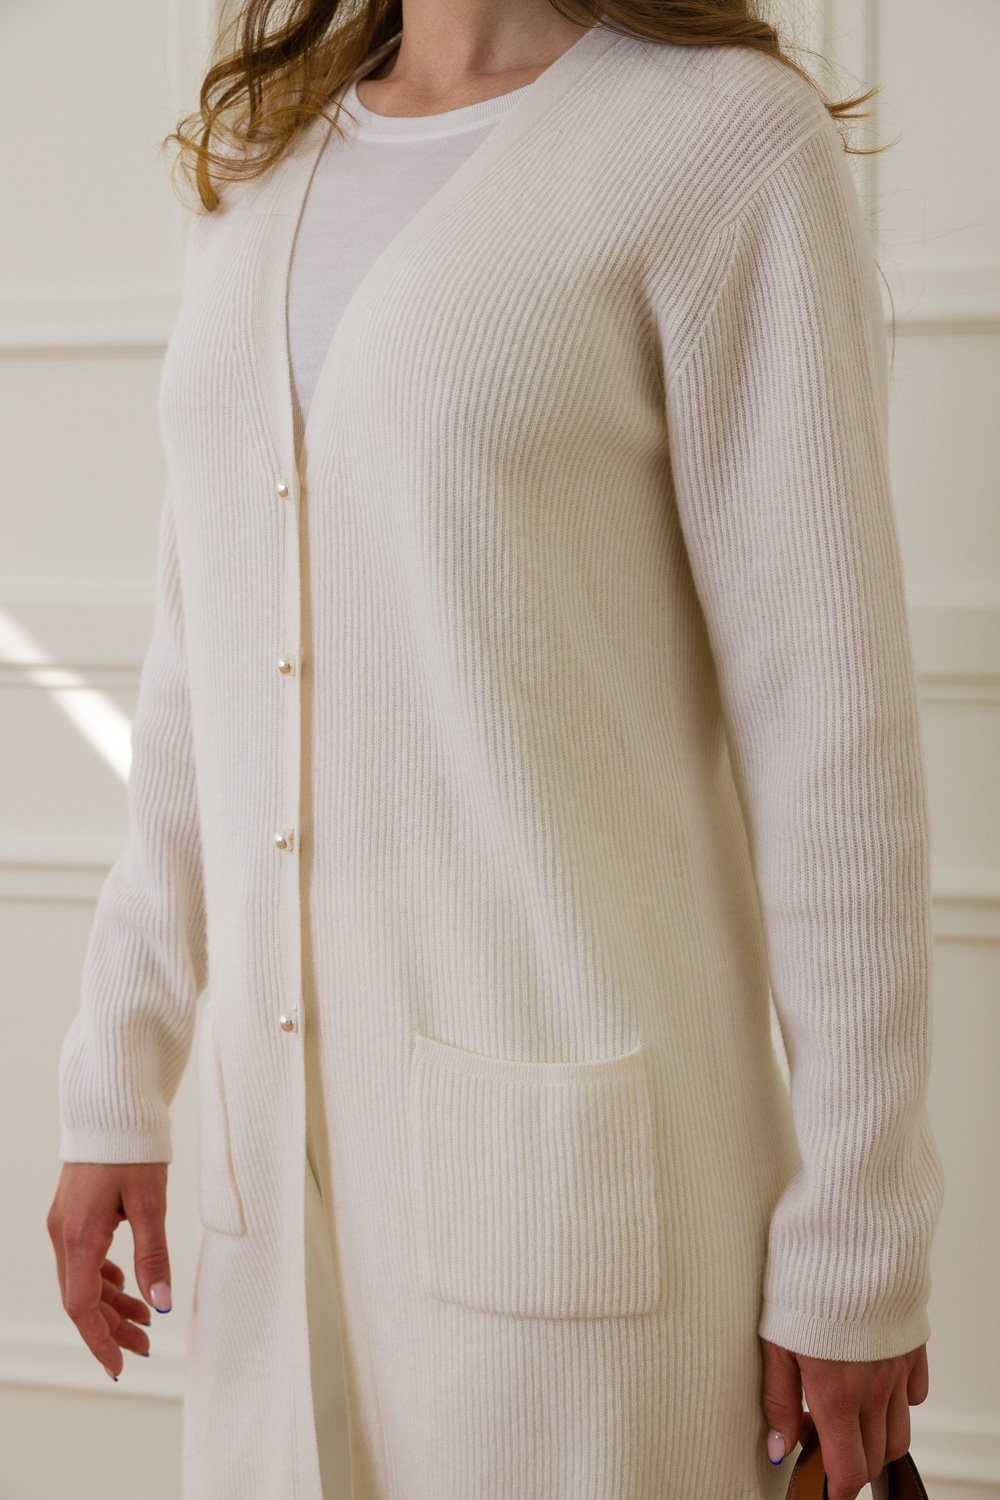 Mary Cashmere Cardigan - Off White